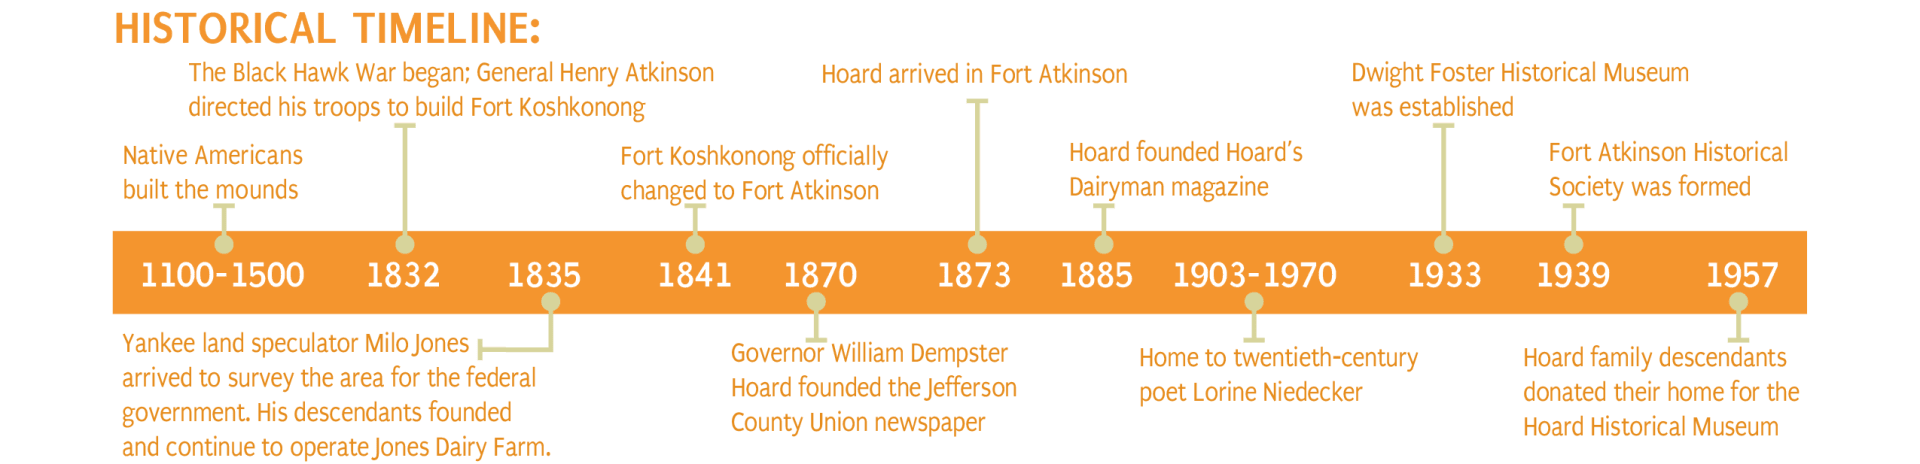 Fort Atkinson Historical Timeline